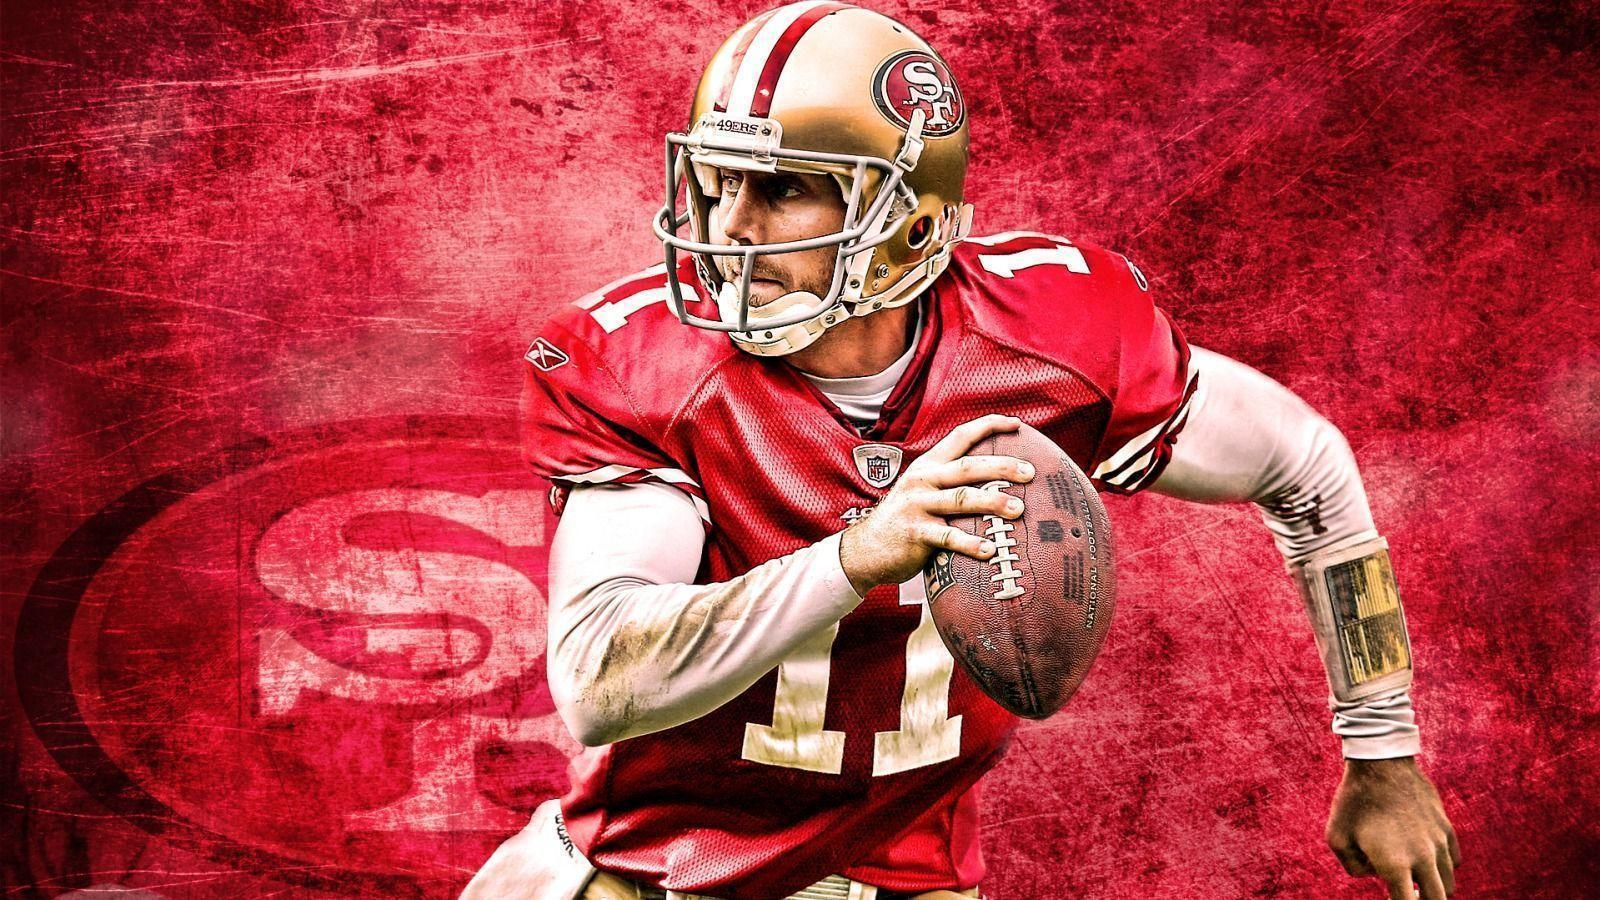 Wallpaper of the day: San Francisco 49ers | San Francisco 49ers ...